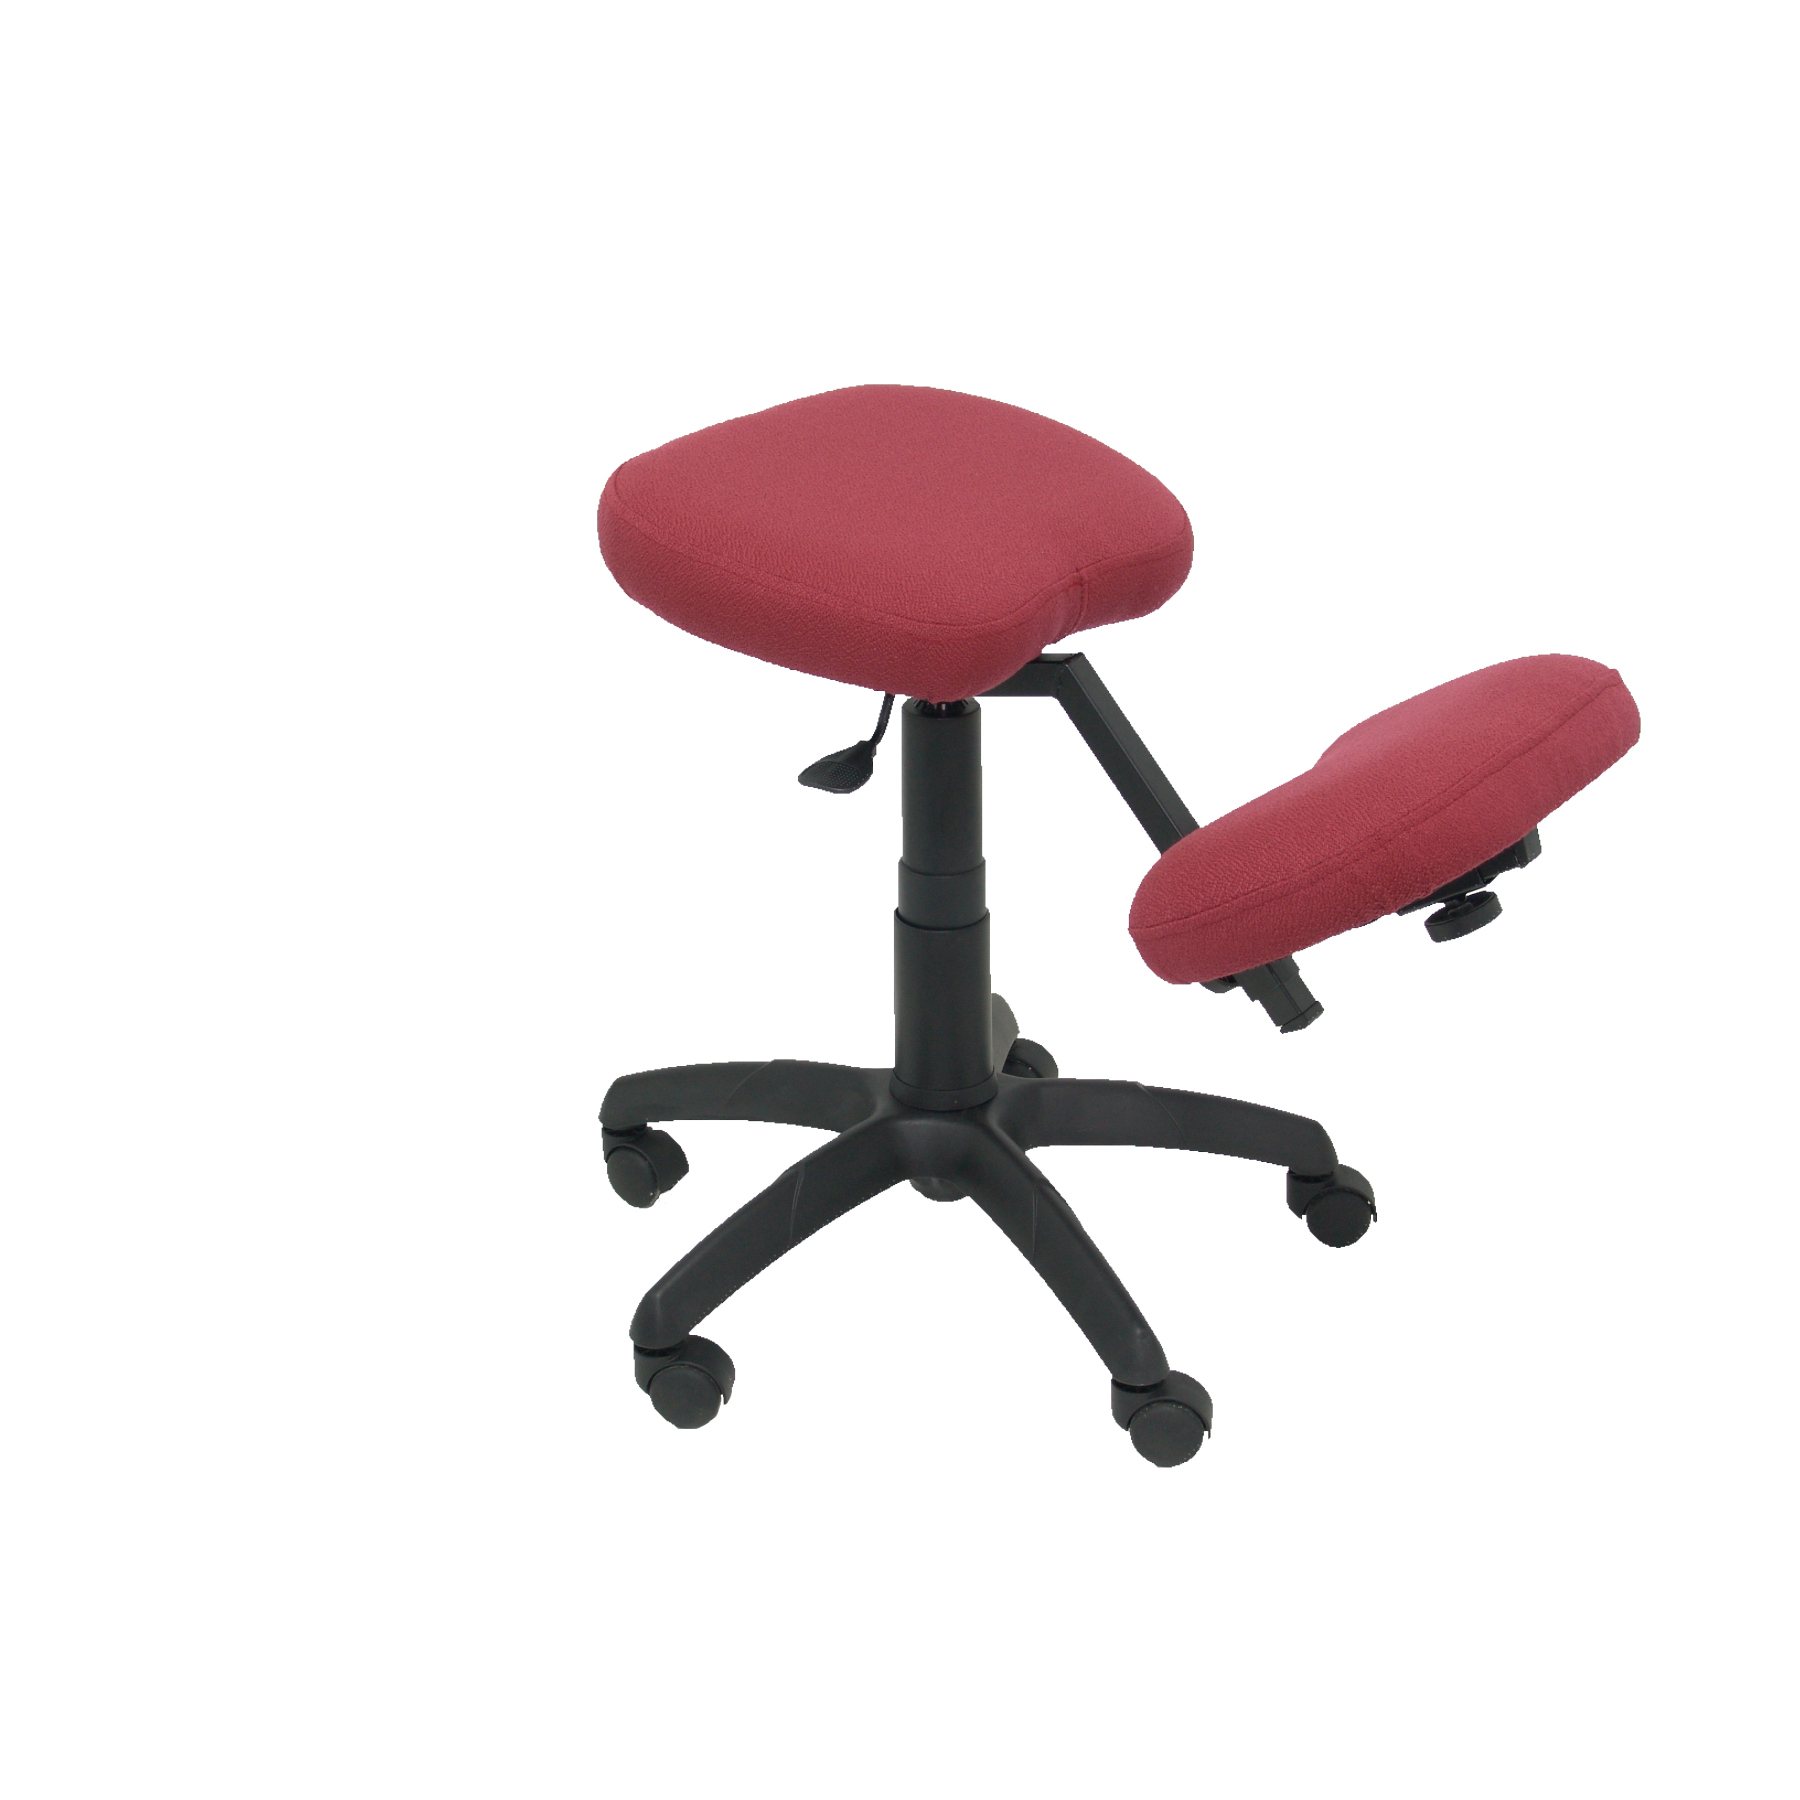 Office's Stool Ergonomic Swivel And Dimmable In High Altitude Up Seat Upholstered In BALI Tissue Maroon Color (RODILLER